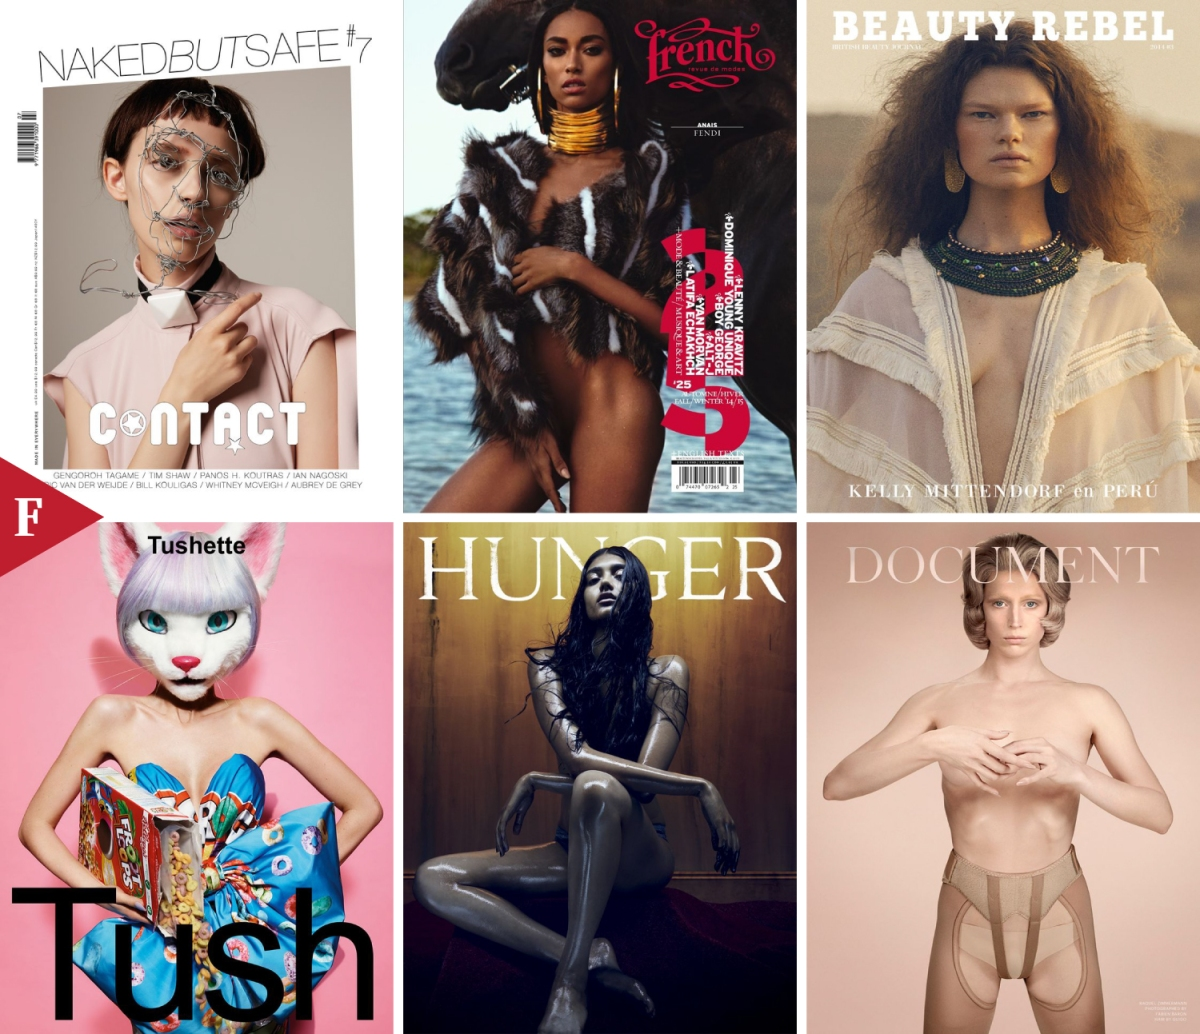 Top 9 #FashionCovers October 2014 ft. @bonmagazine @lonewolfmag @NakedButSafeMag @TushMagazine @beautyrebelmag @ODDAmagazine @documentjournal @HungerMagazine